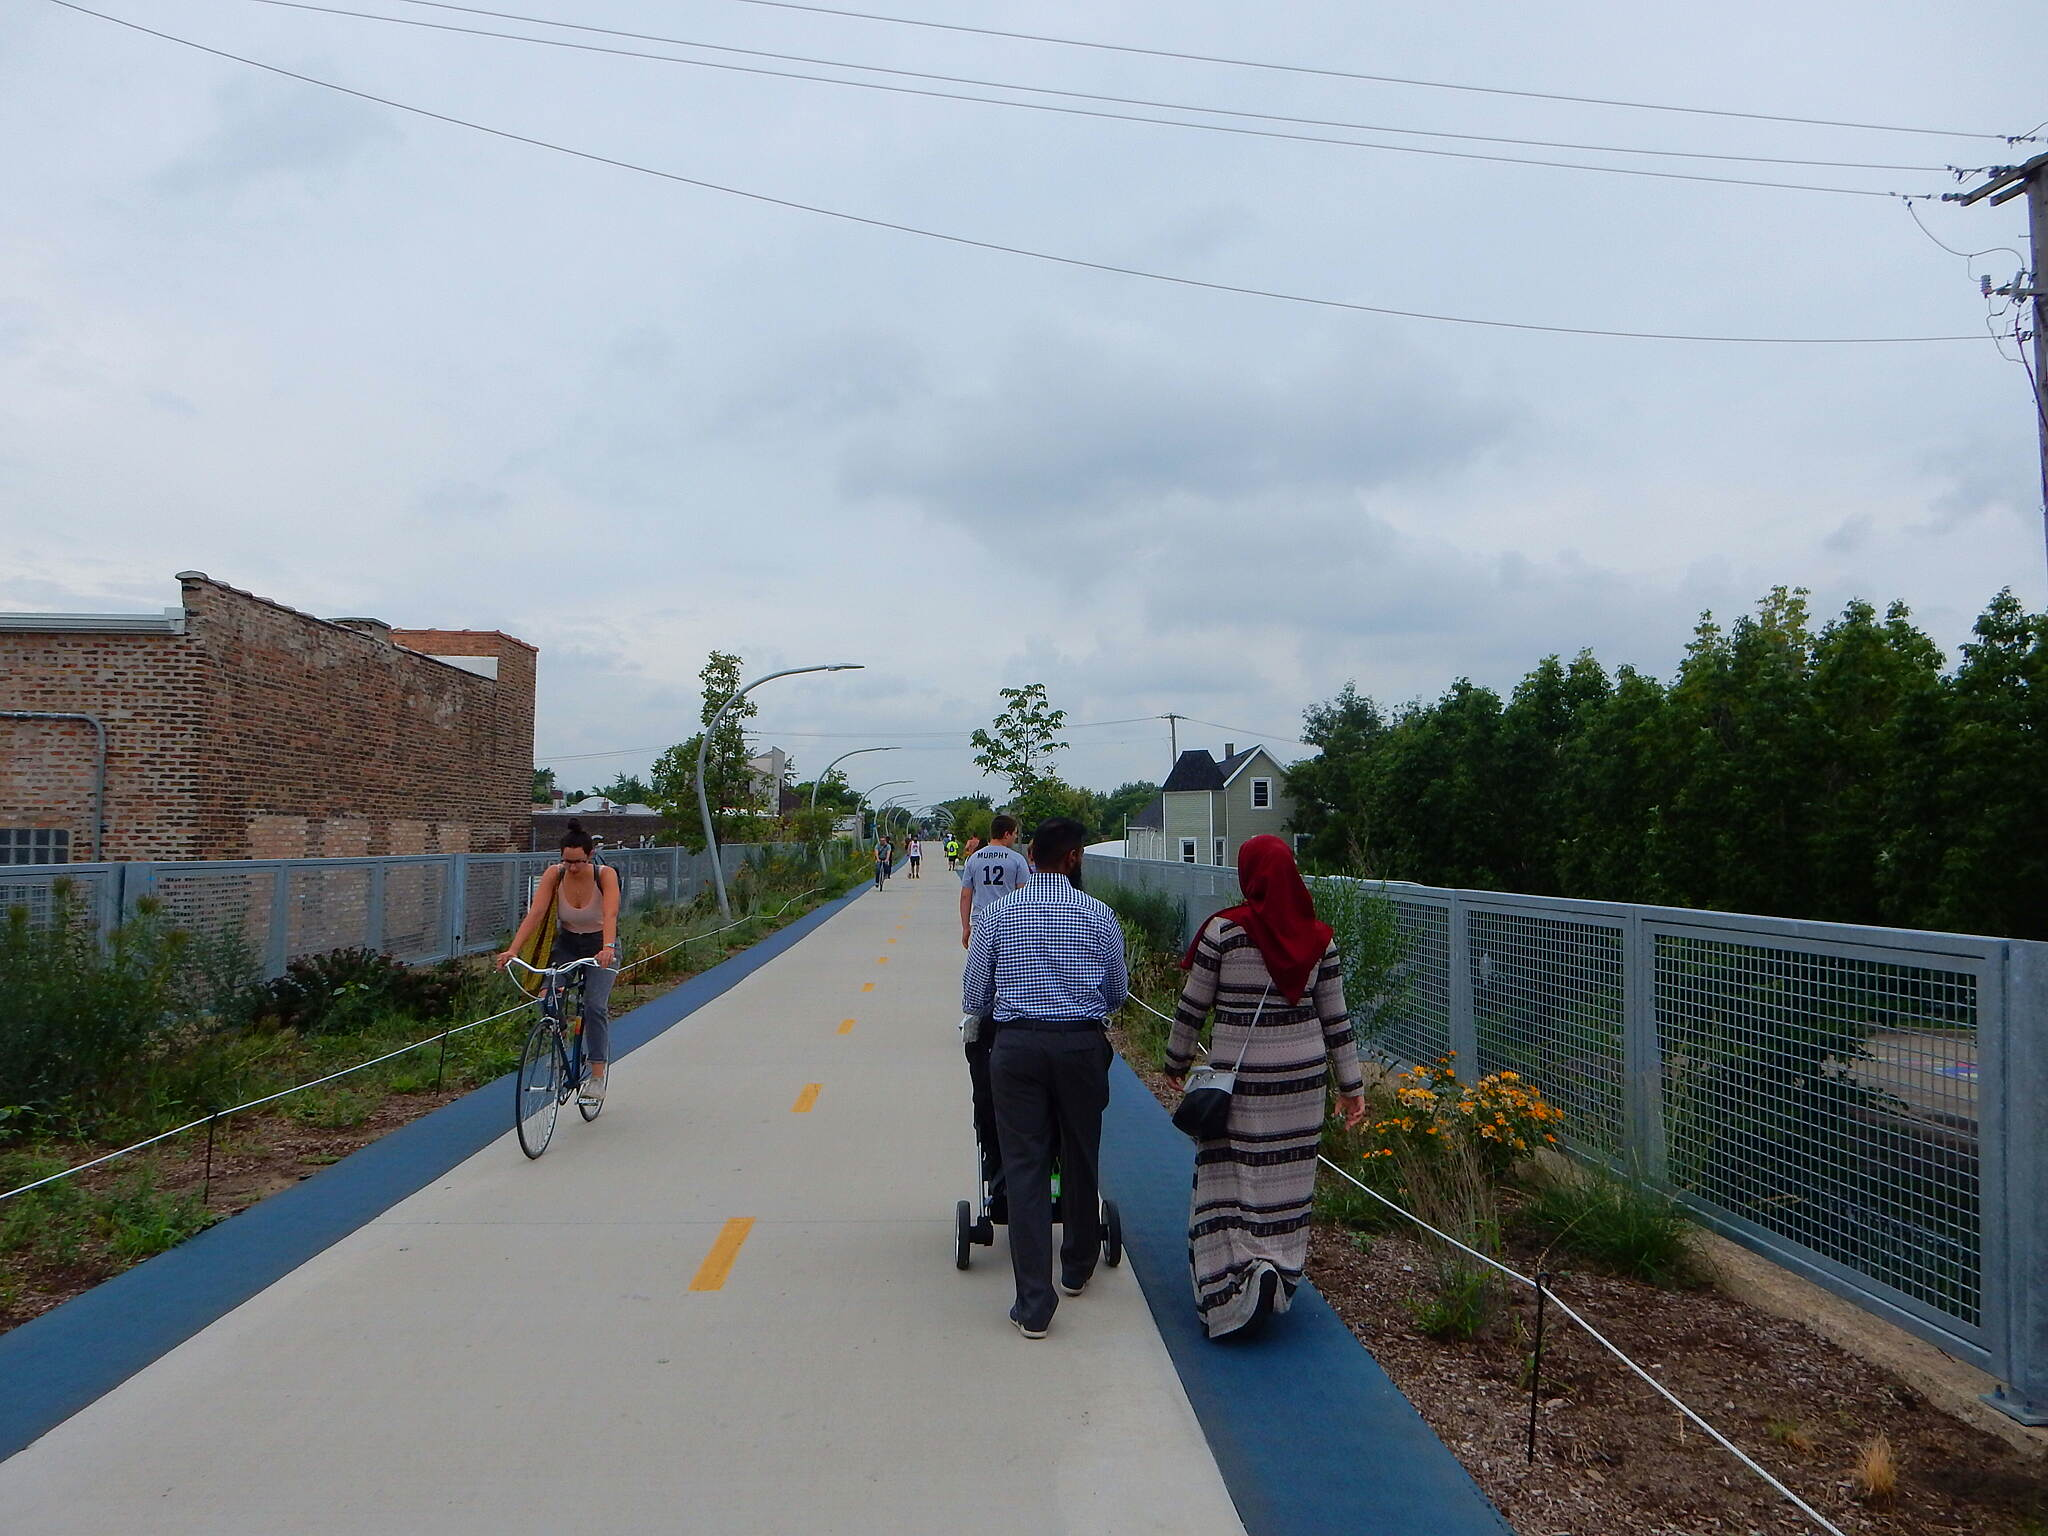 Bloomingdale Trail (The 606) The trail can get crowded. While there on a Monday during the day, there were quite a few people on the trail....taken 8-15-16.